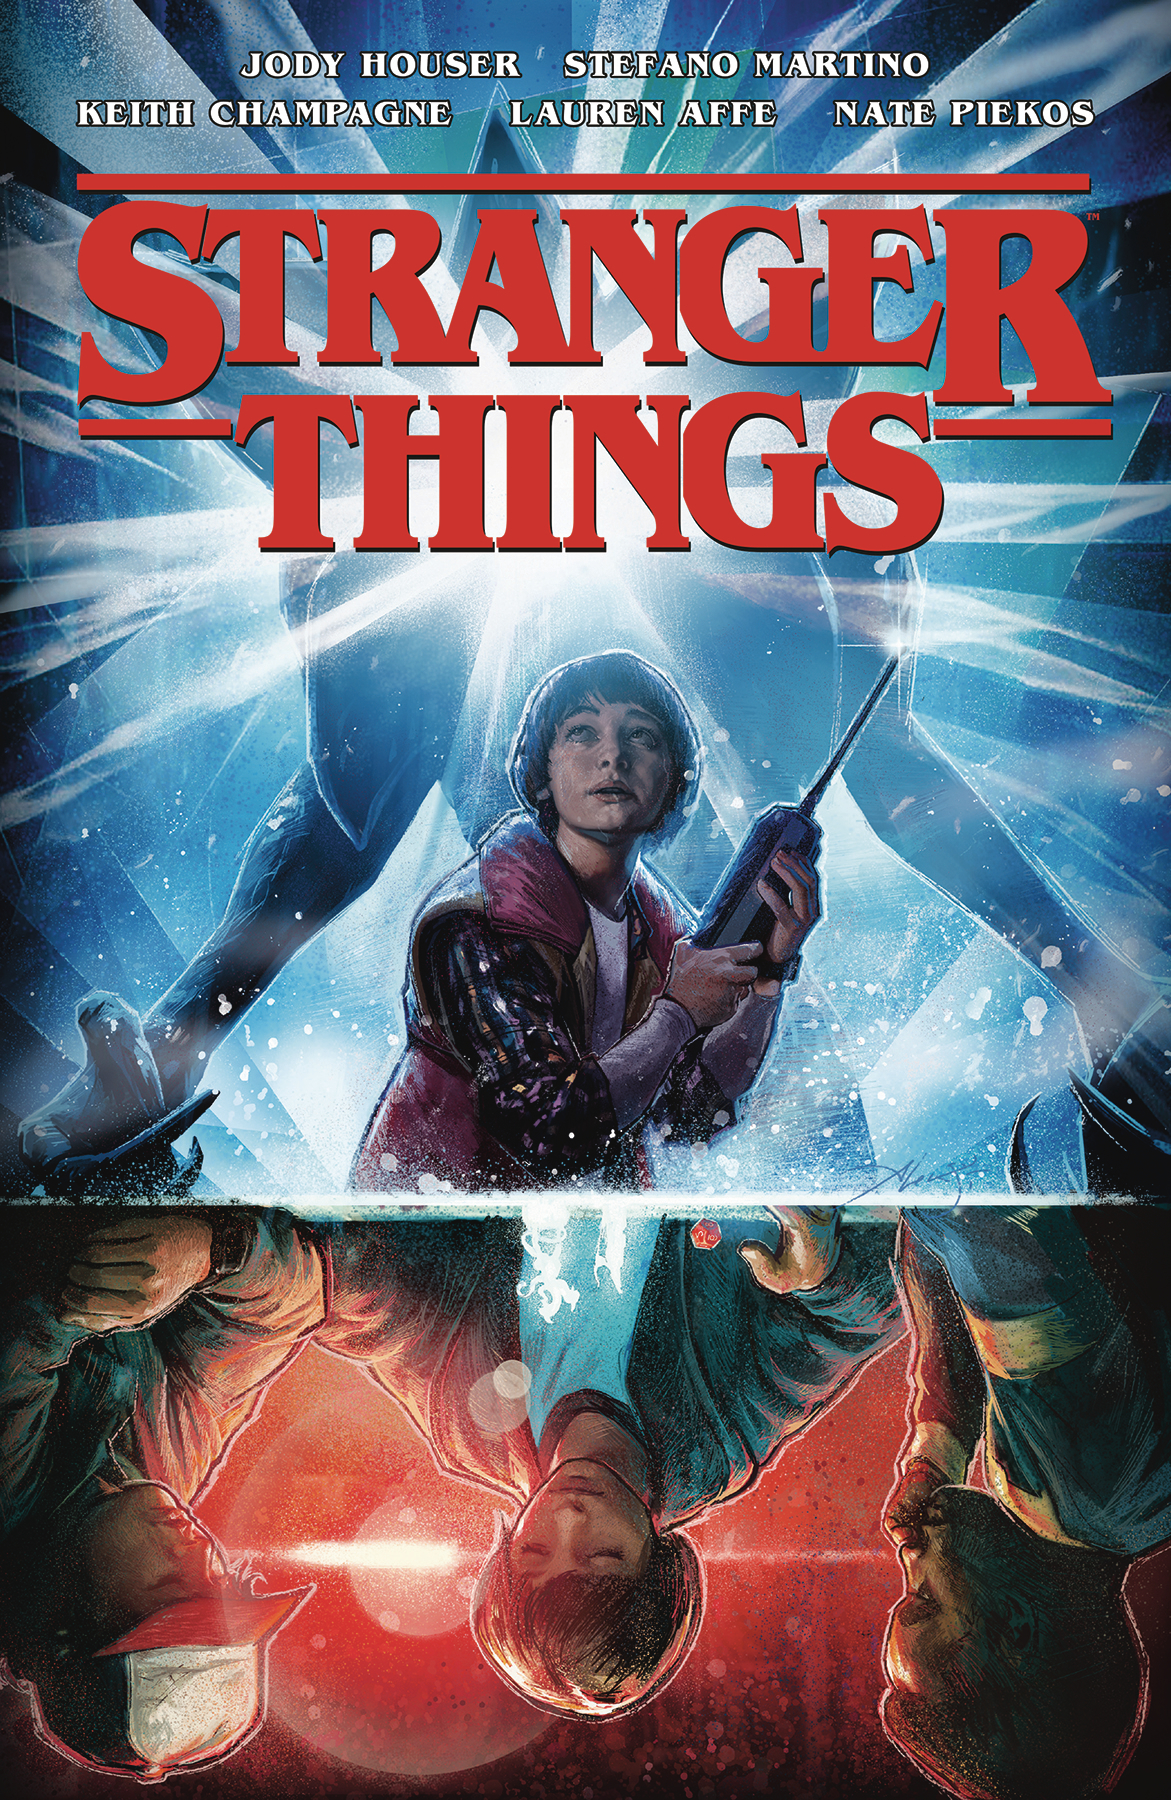 STRANGER THINGS TP VOL 01 OTHER SIDE (JAN190427)